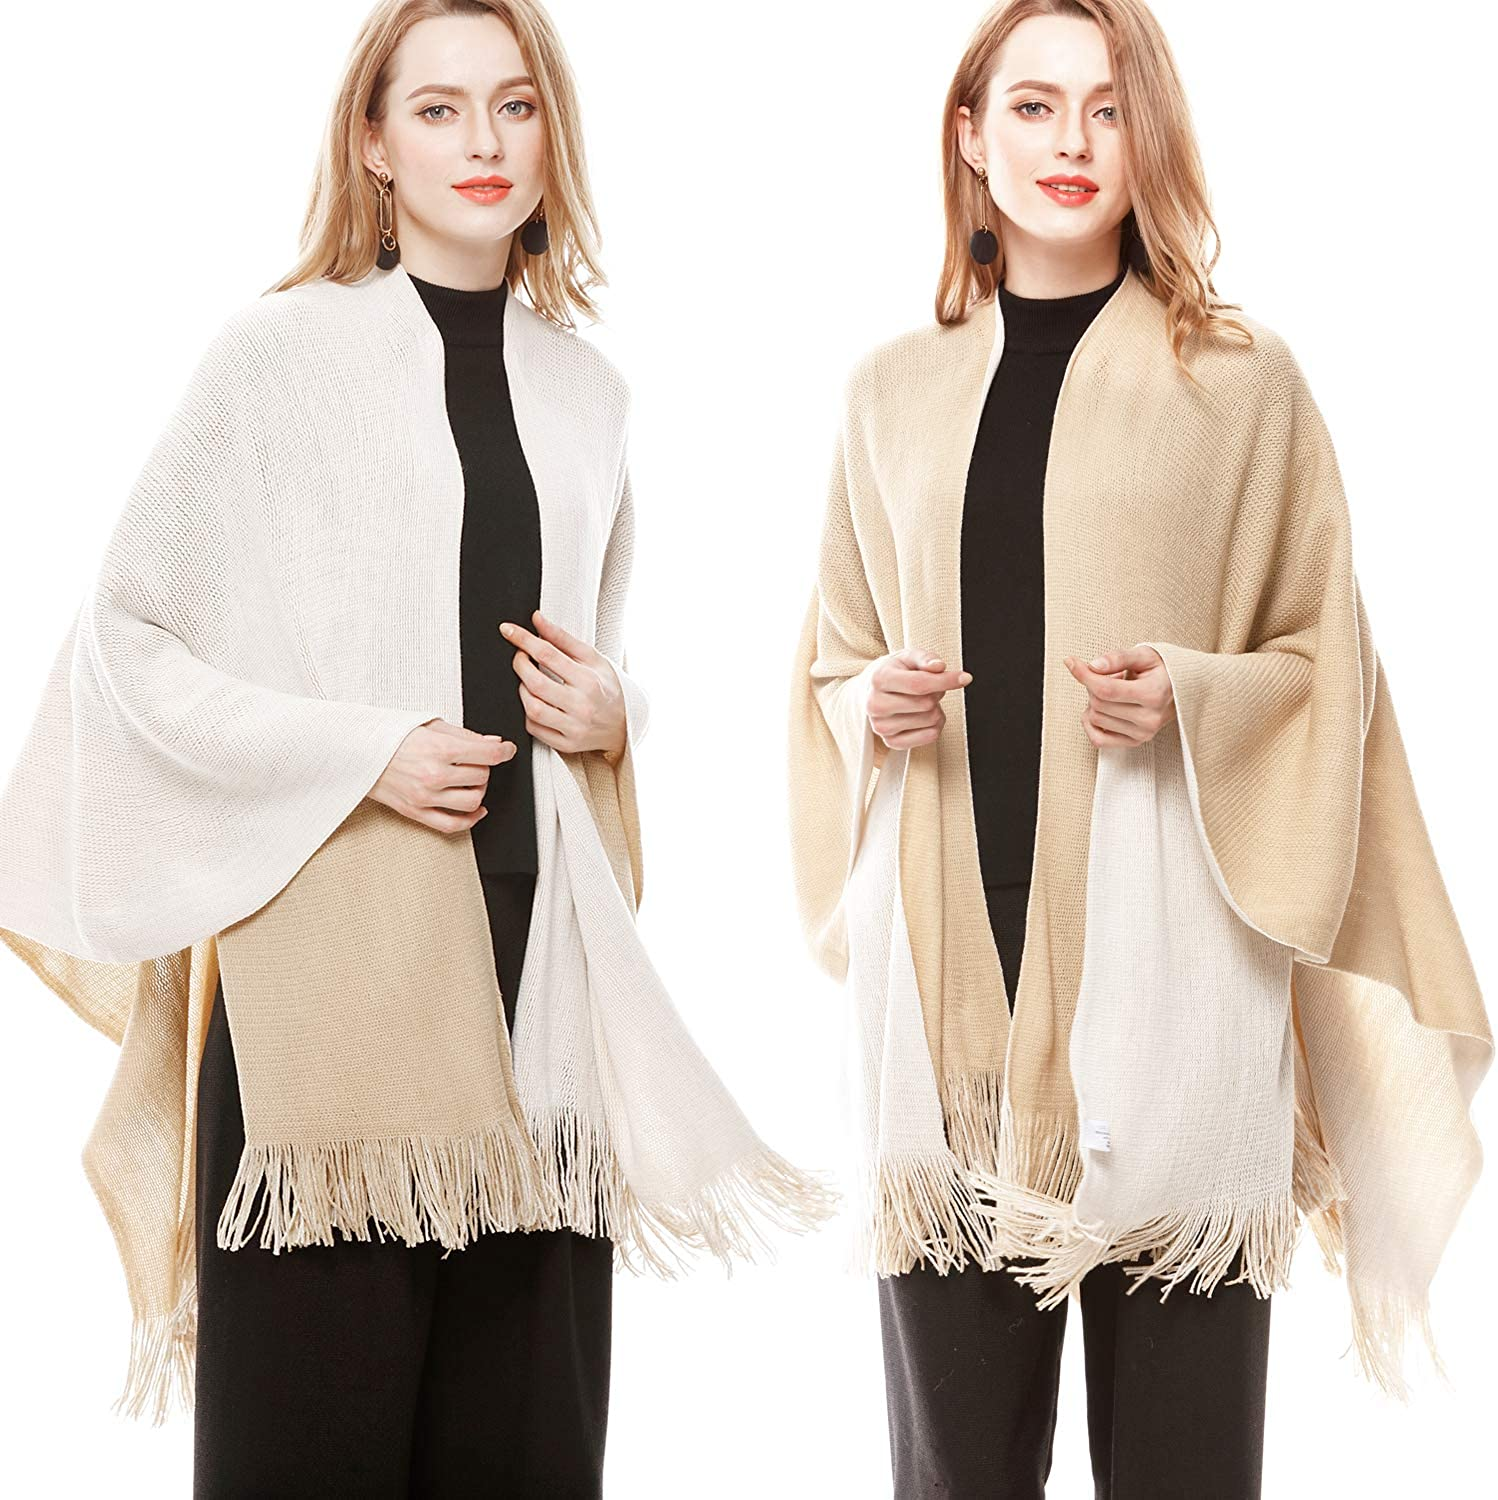 Lovful Women's Winter Cashmere Feel Poncho Open Front Blanket Capes Shawl Cardigans Sweater Coat